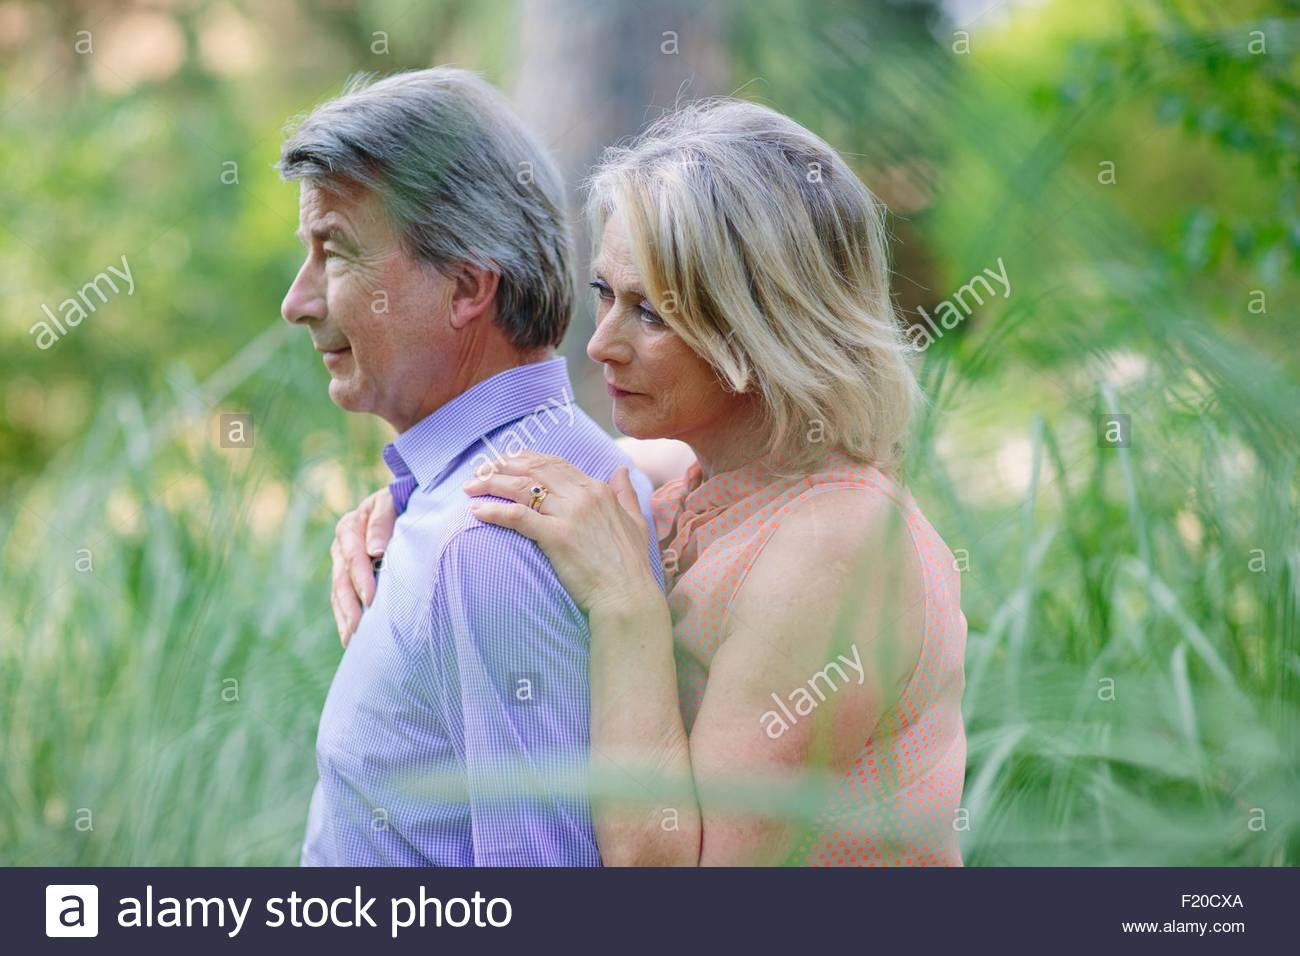 Senior couple standing together, outdoors, with pensive expression - Stock Image